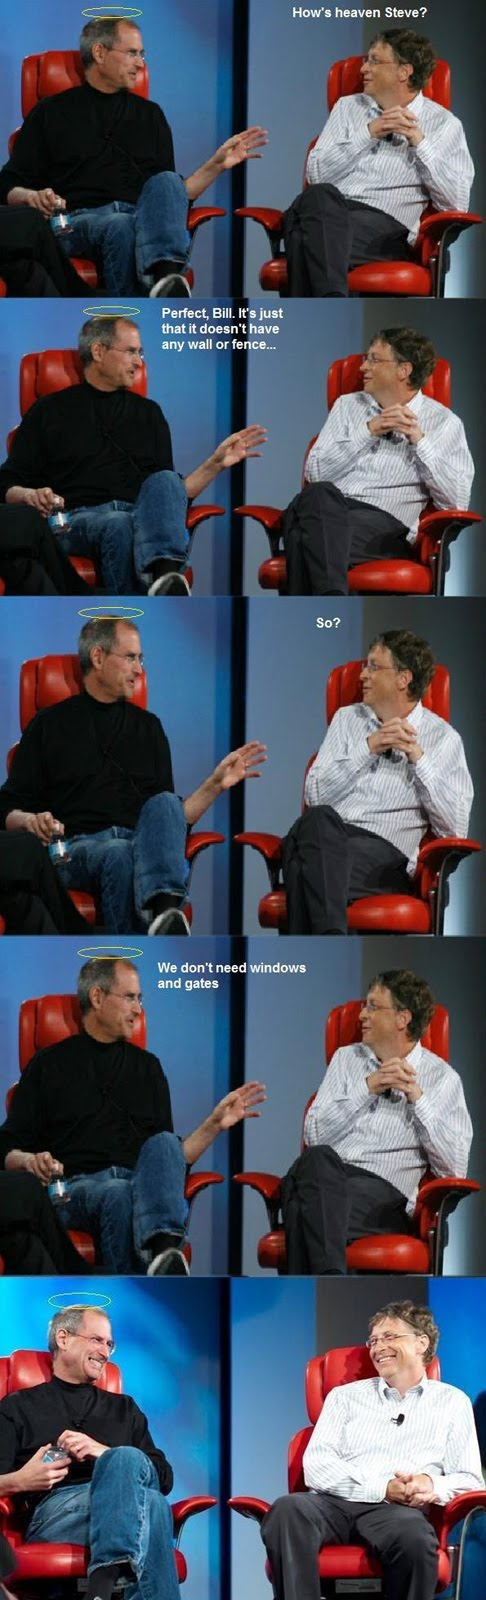 Steve Jobs And Bill Gates Talking About Heaven